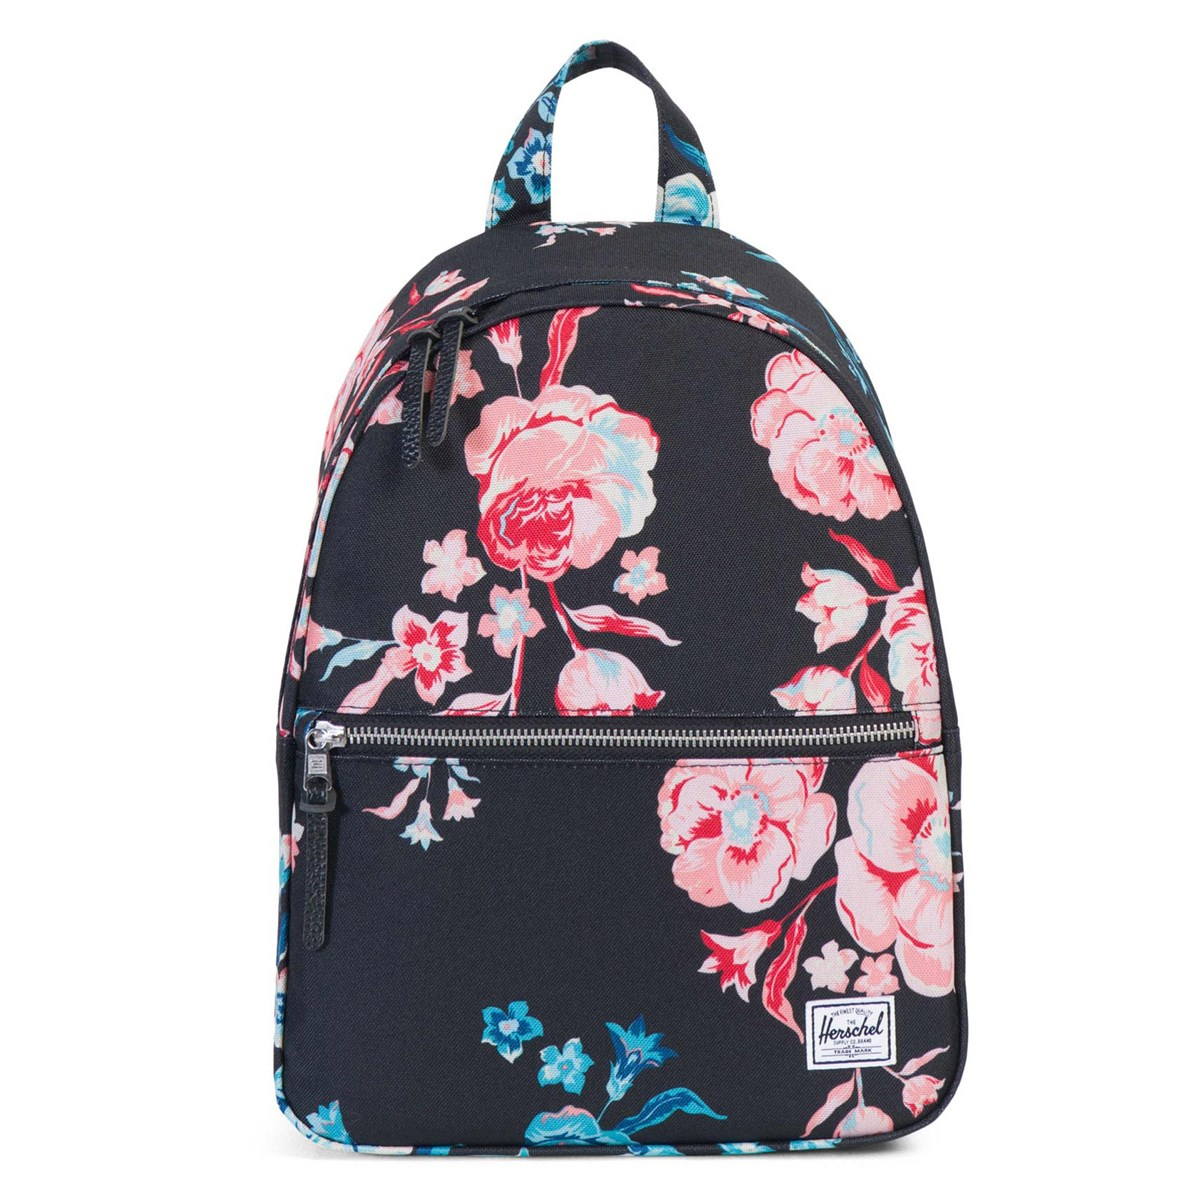 84f3bad90aac Women s Town Black Floral Backpack